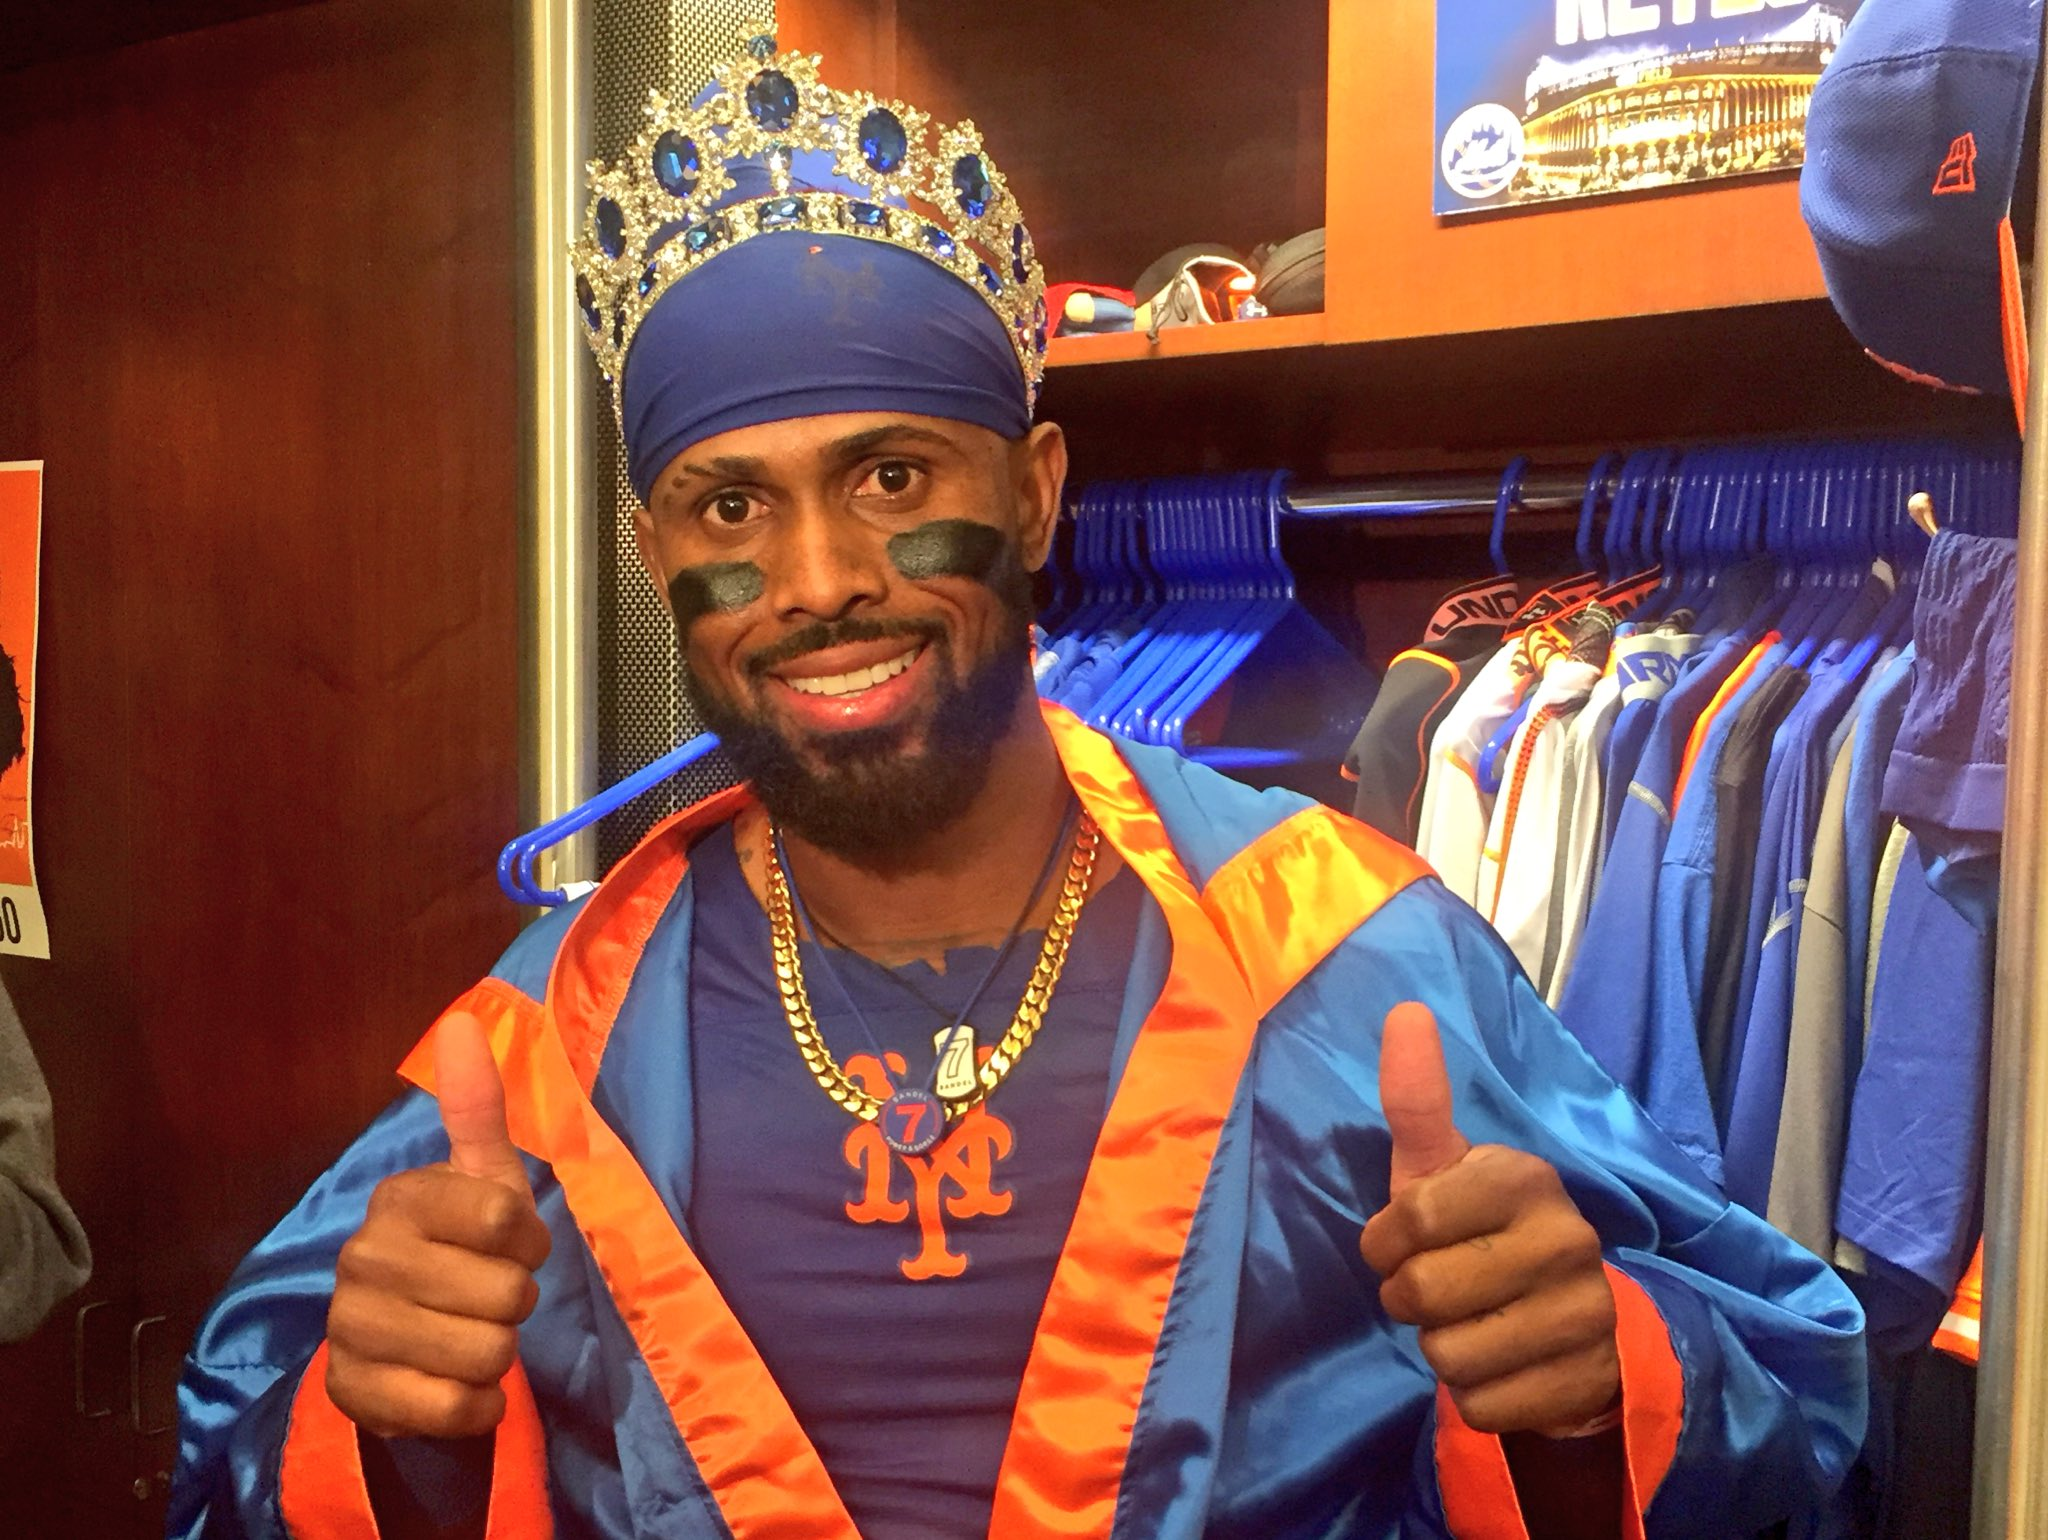 .@lamelaza_7 another ��! #MetsWin https://t.co/4hmx4T1sPp